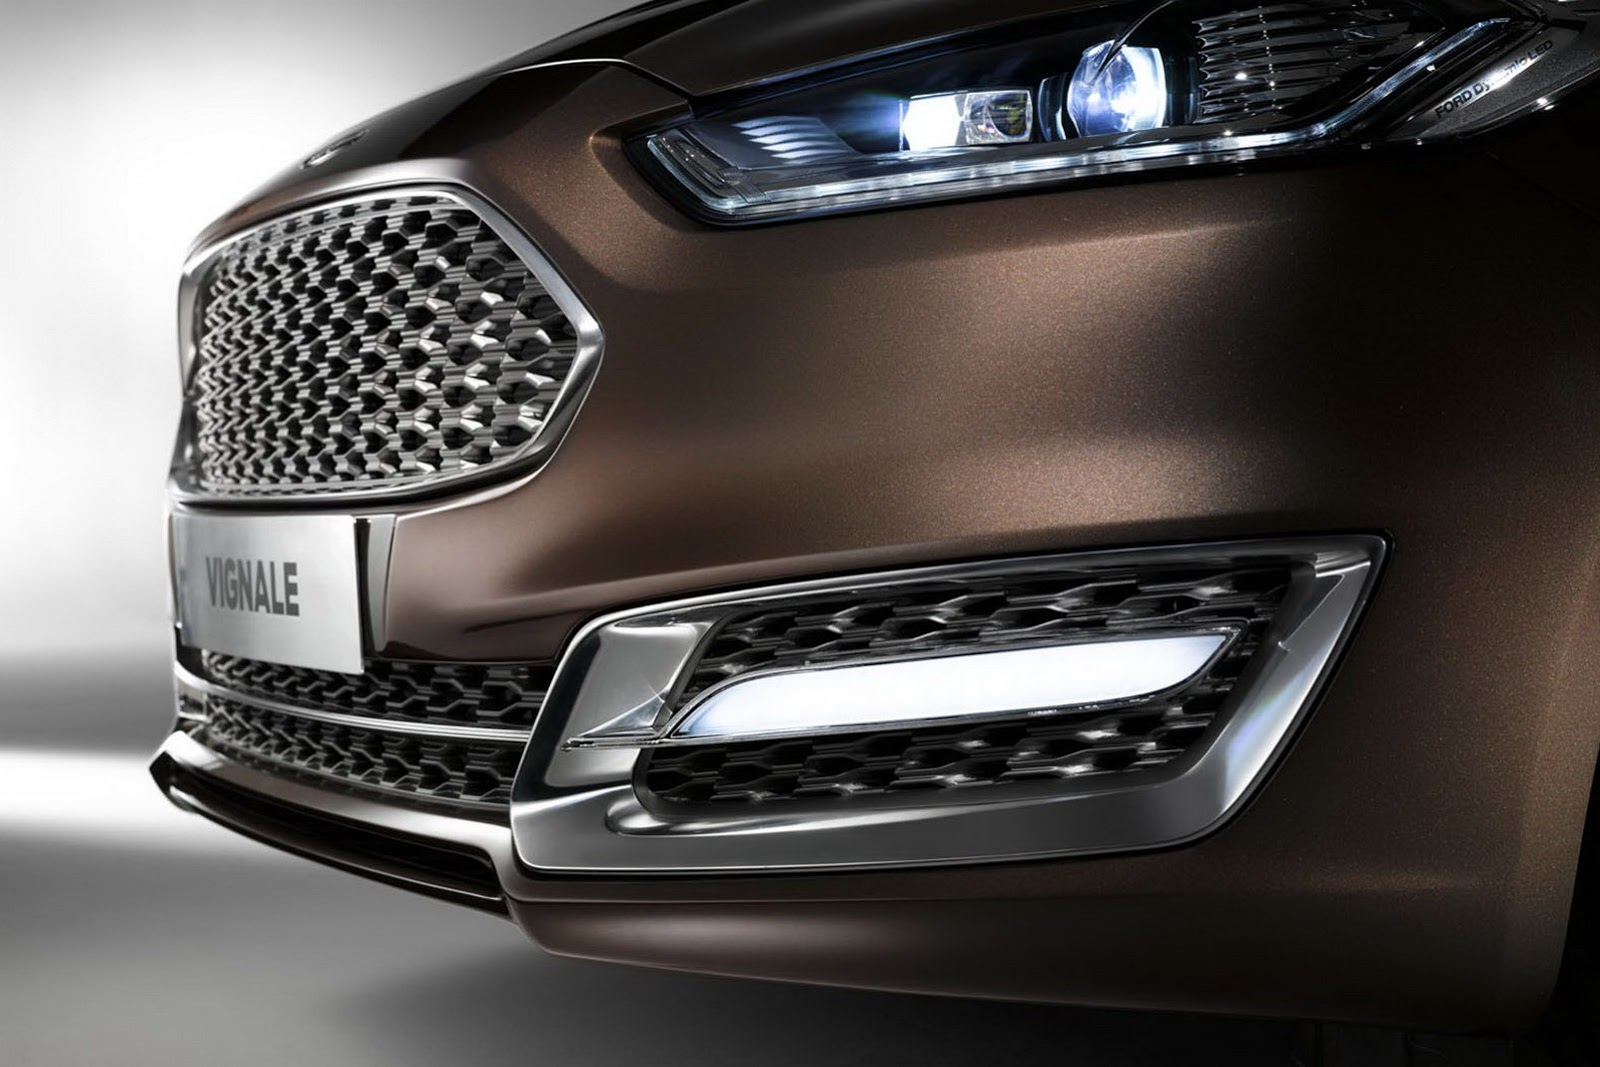 Ford Launches Vignale Concept Previews Upcoming Premium